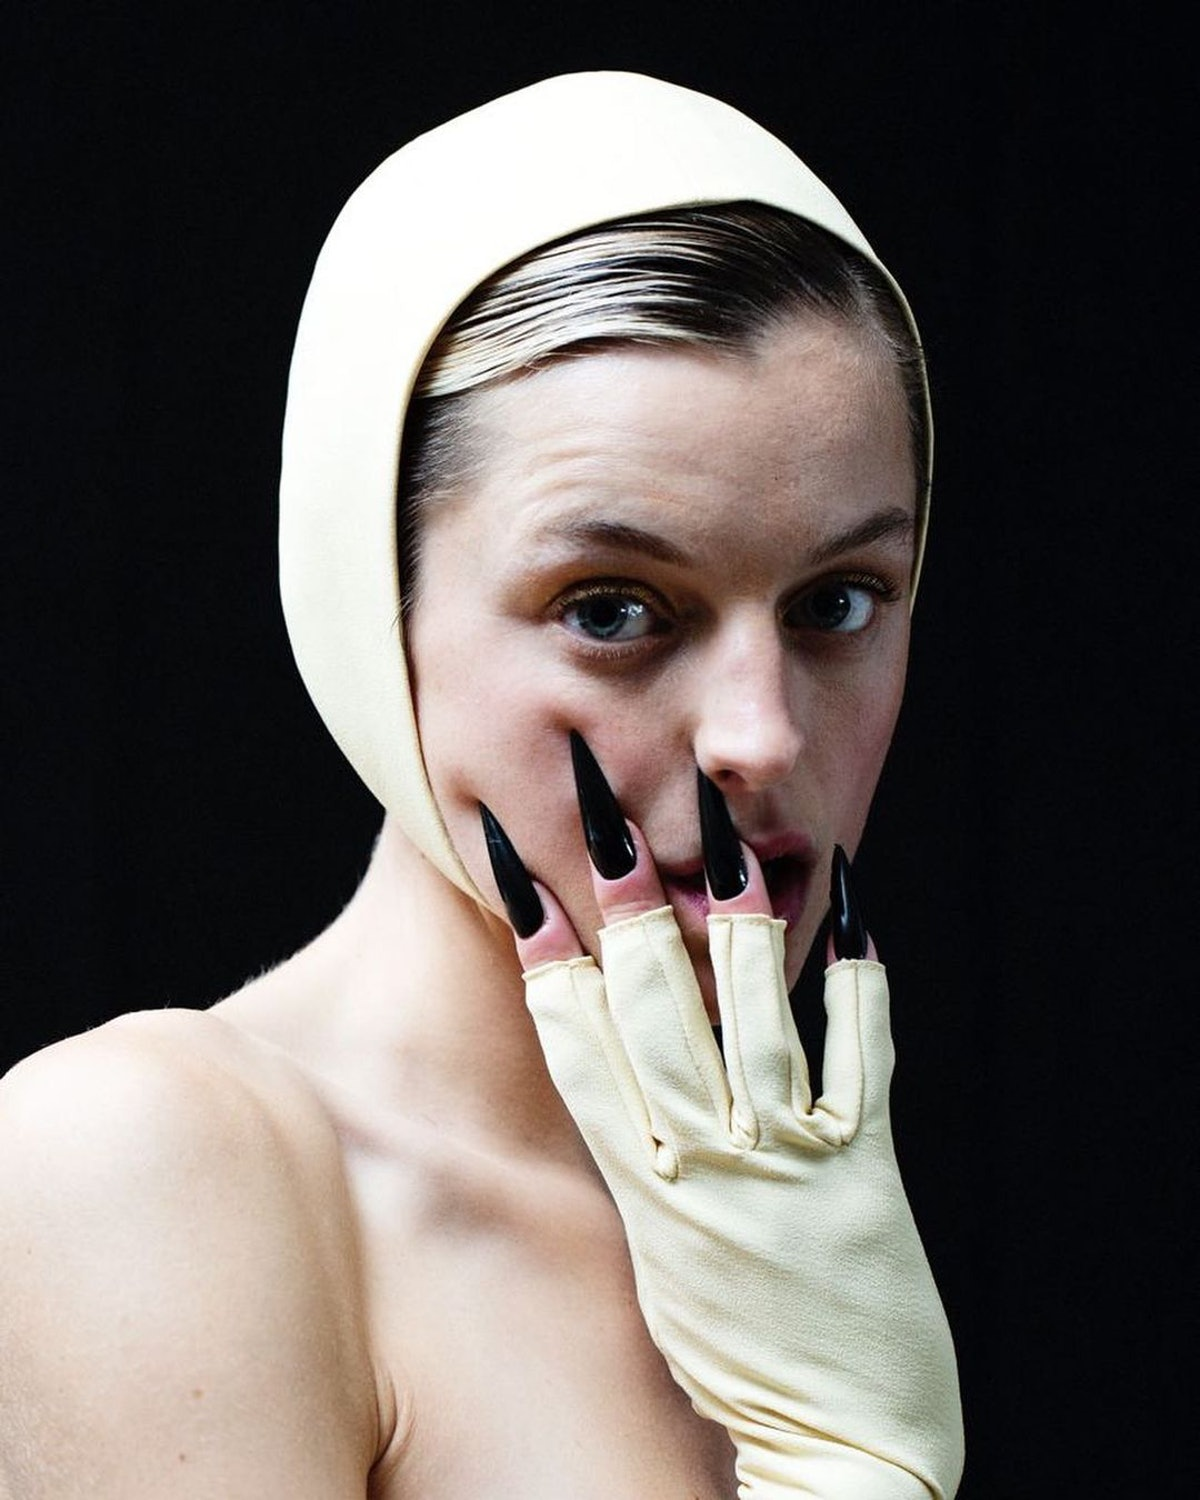 Emma Corrin showing off their talon nails at the 2021 Emmys